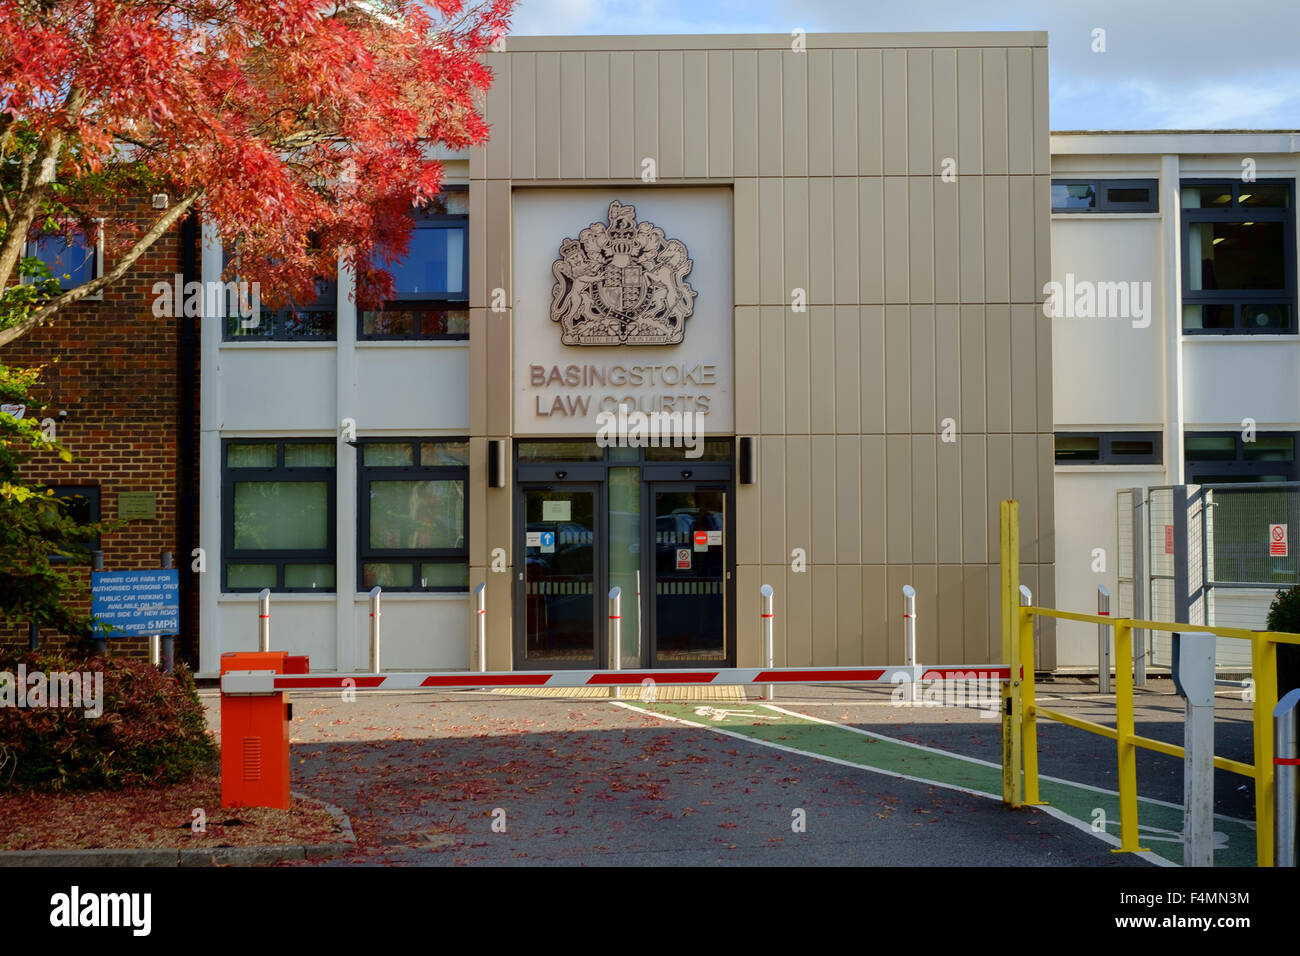 Basingstoke magistrados y tribunales. La Court House London Road Basingstoke Hampshire RG21 4AB. Foto de stock